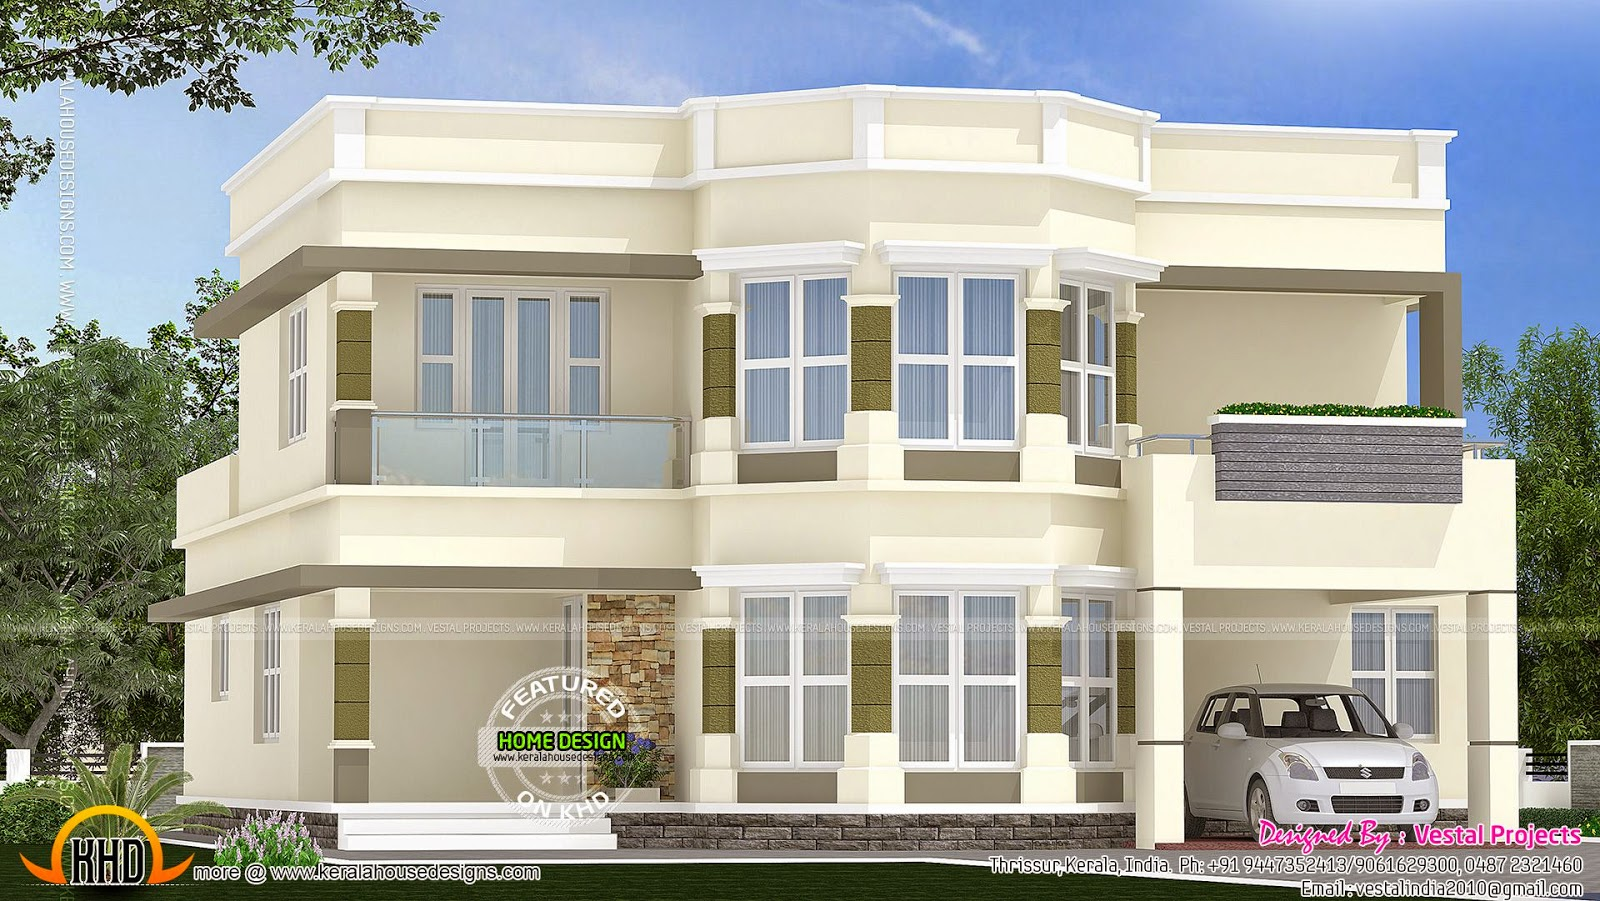 Box type house exterior elevation keralahousedesigns for Modern box type house design